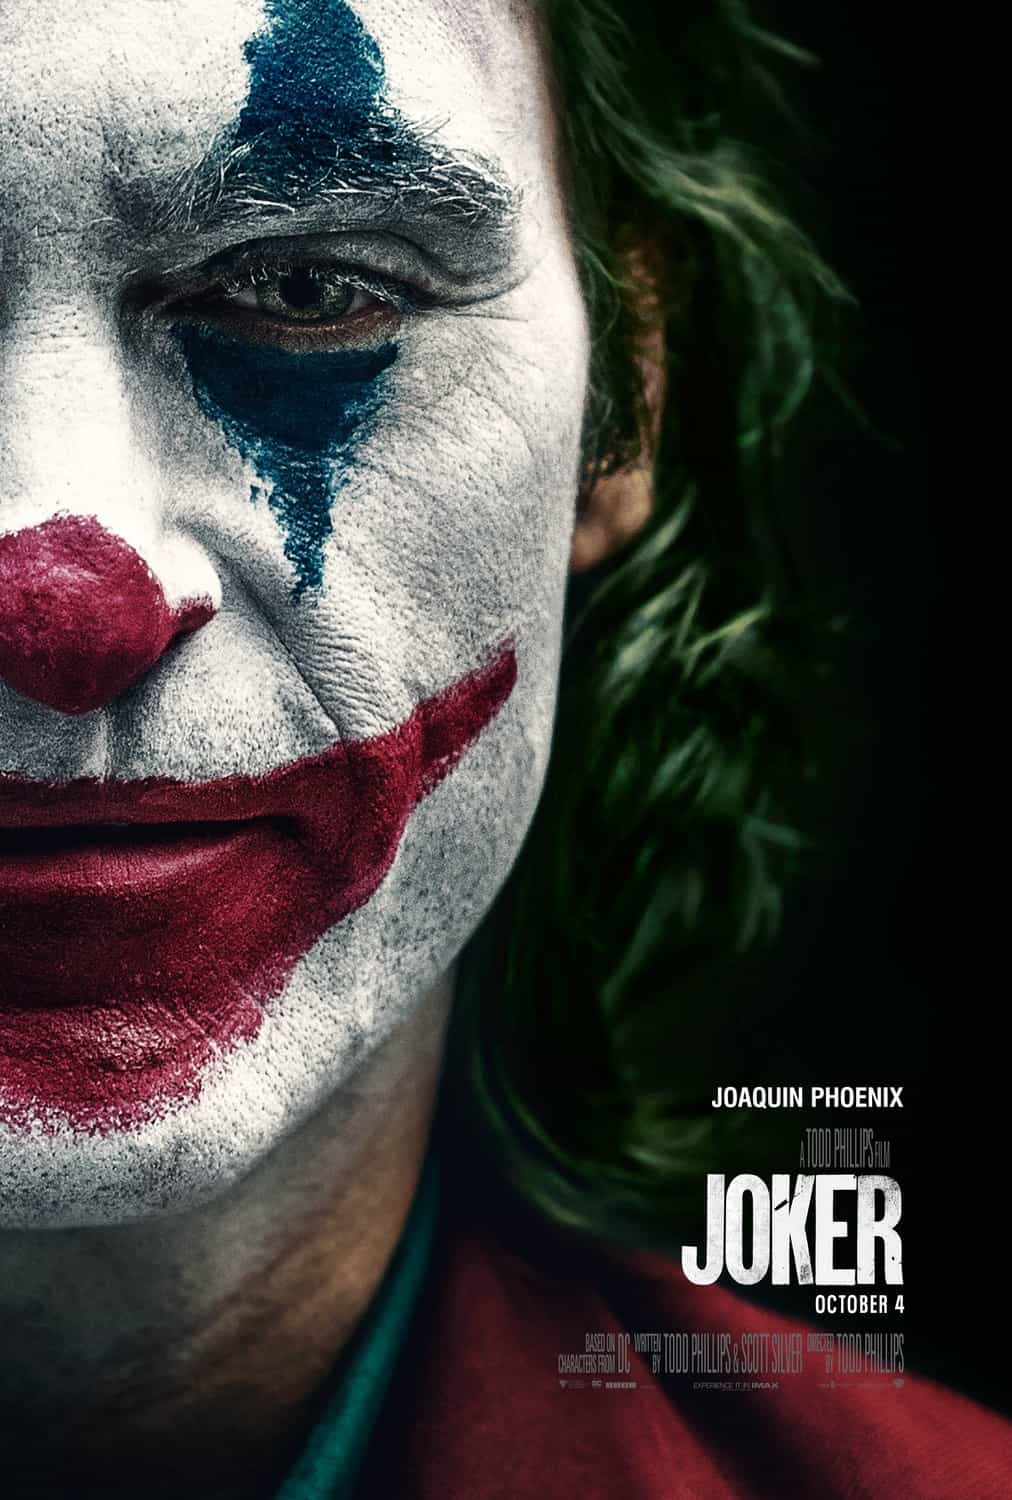 Joker continues its impressive box office run and becomes the highest grossing 15 rating film in the UK